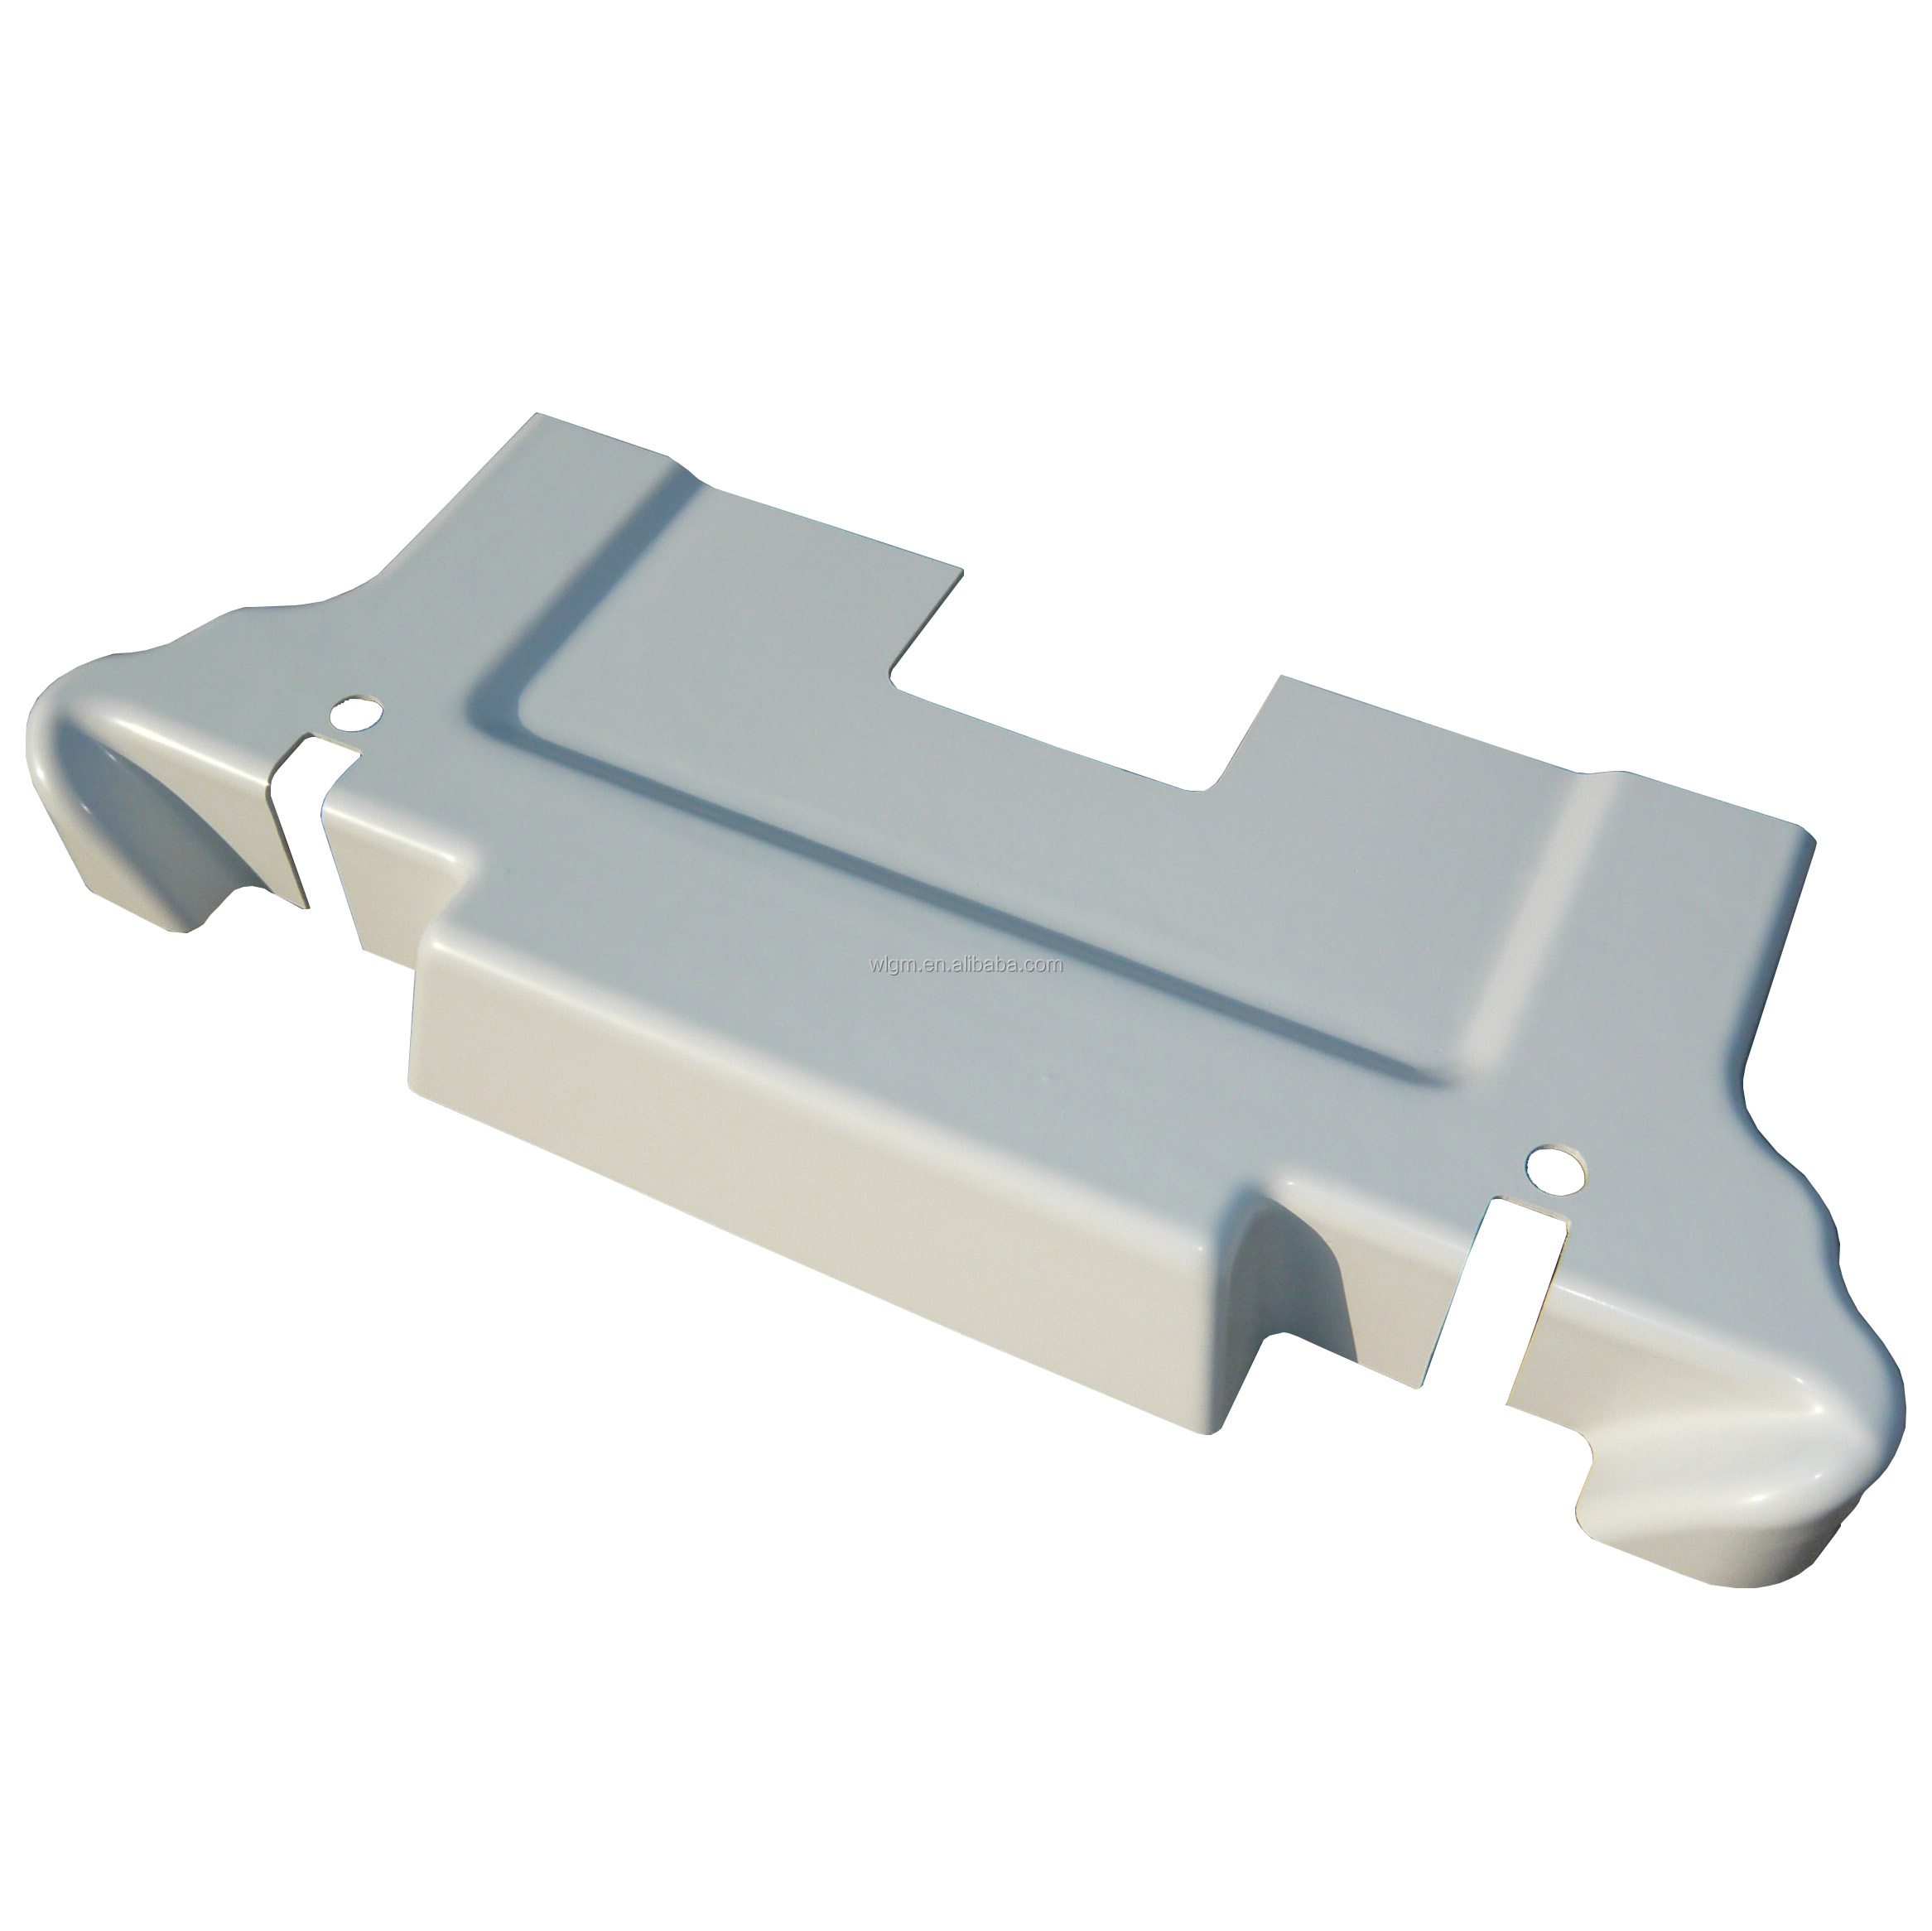 vacuum forming abs parts ningbo yuyao plastic cover vacuumf forming trays thermoforming product